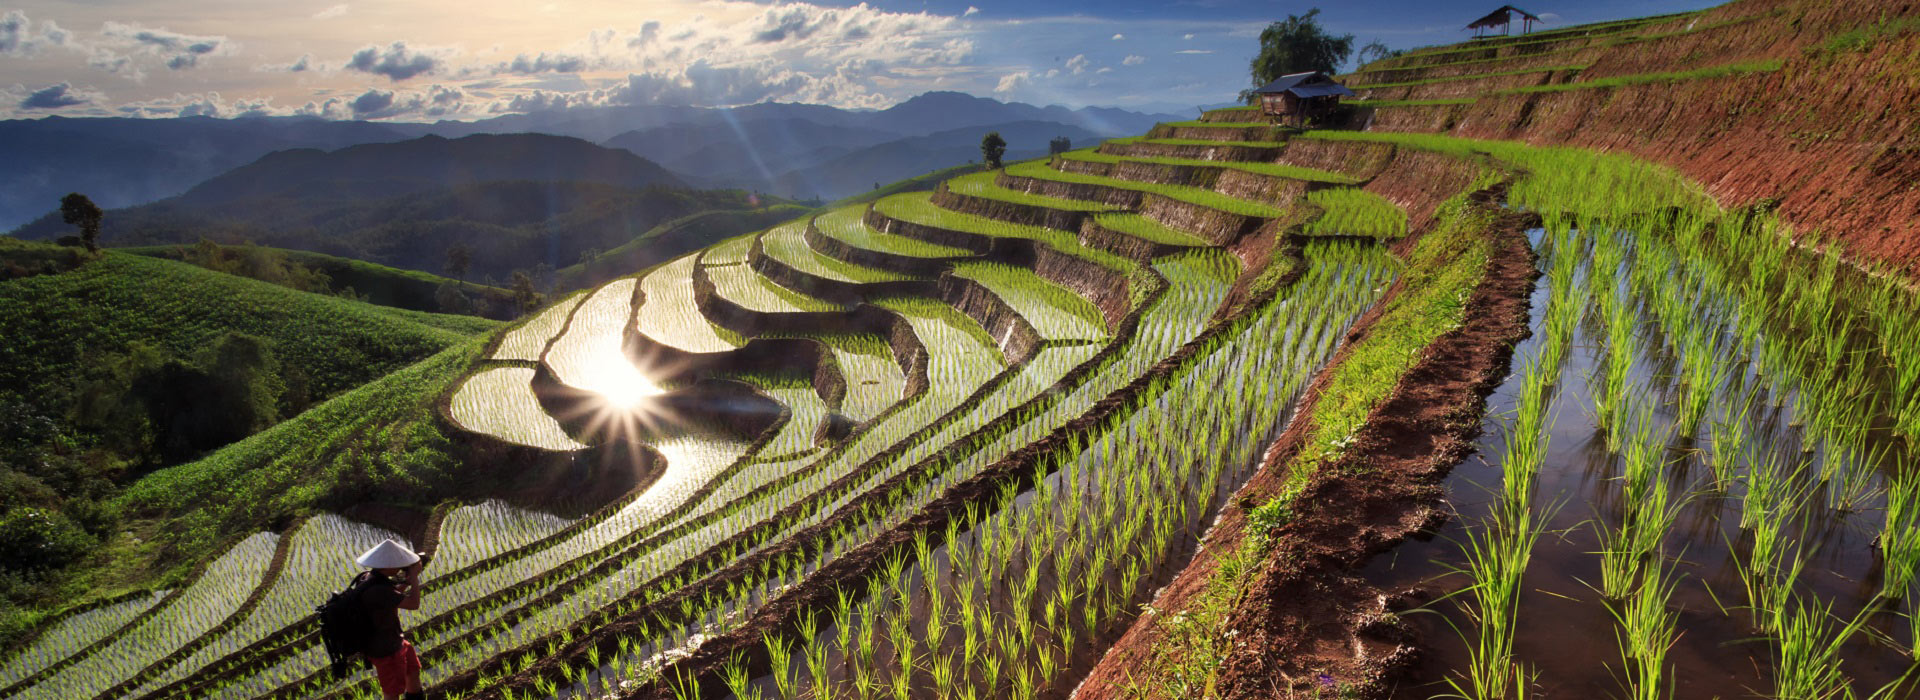 rice_fields_on_terraced_at_chiang_mai